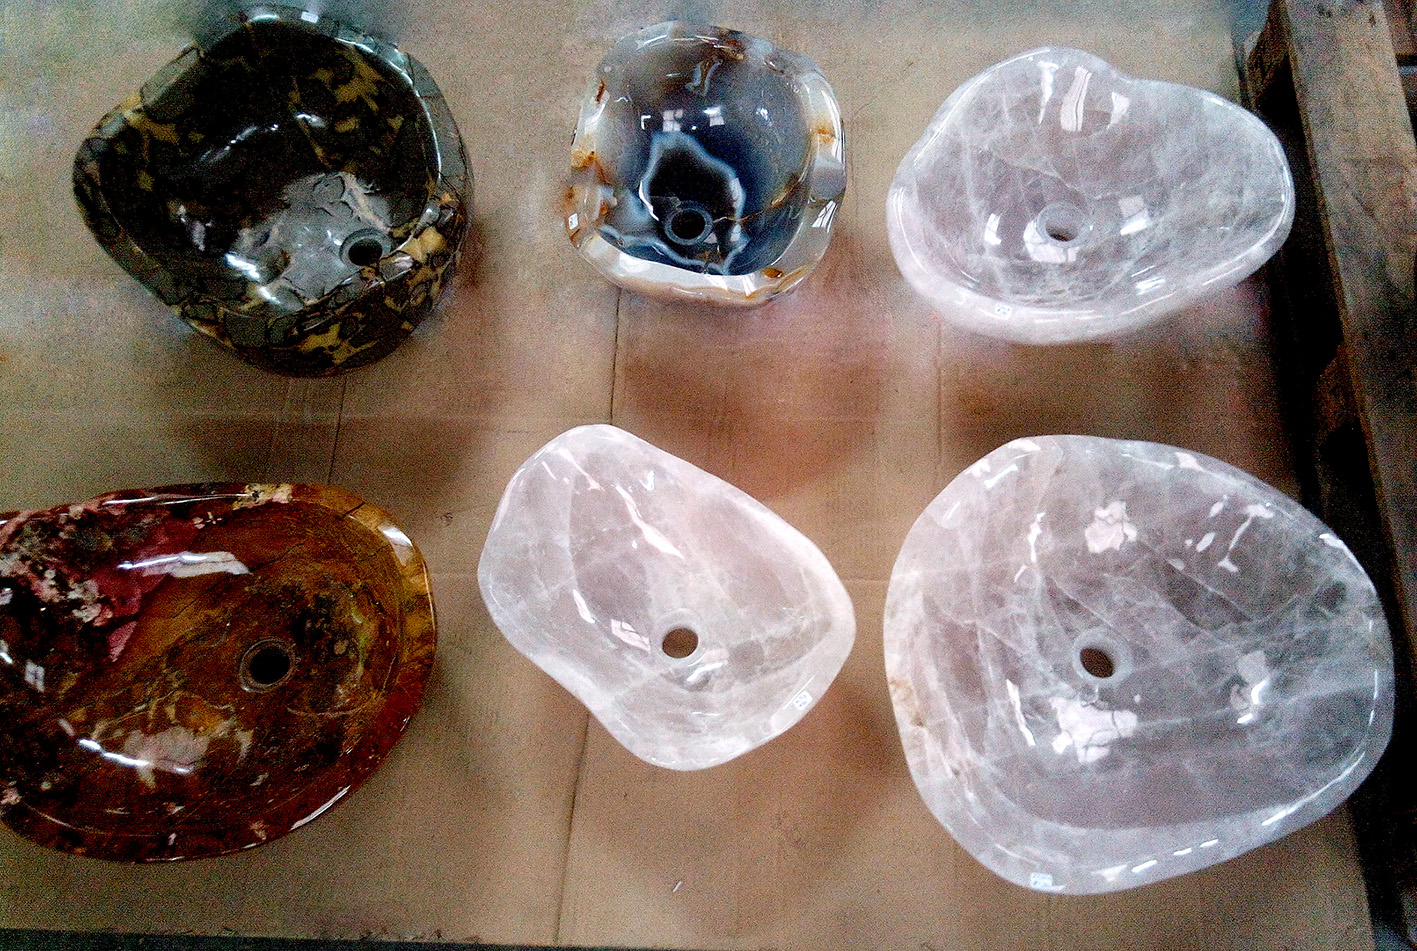 Assorted Decoration Sinks Carved In Different Stones (Agate, Jaspers,  Quartz Crystal, Rose Quartzes And Others). Elegant Uniqueness For  Multi Purpose ...